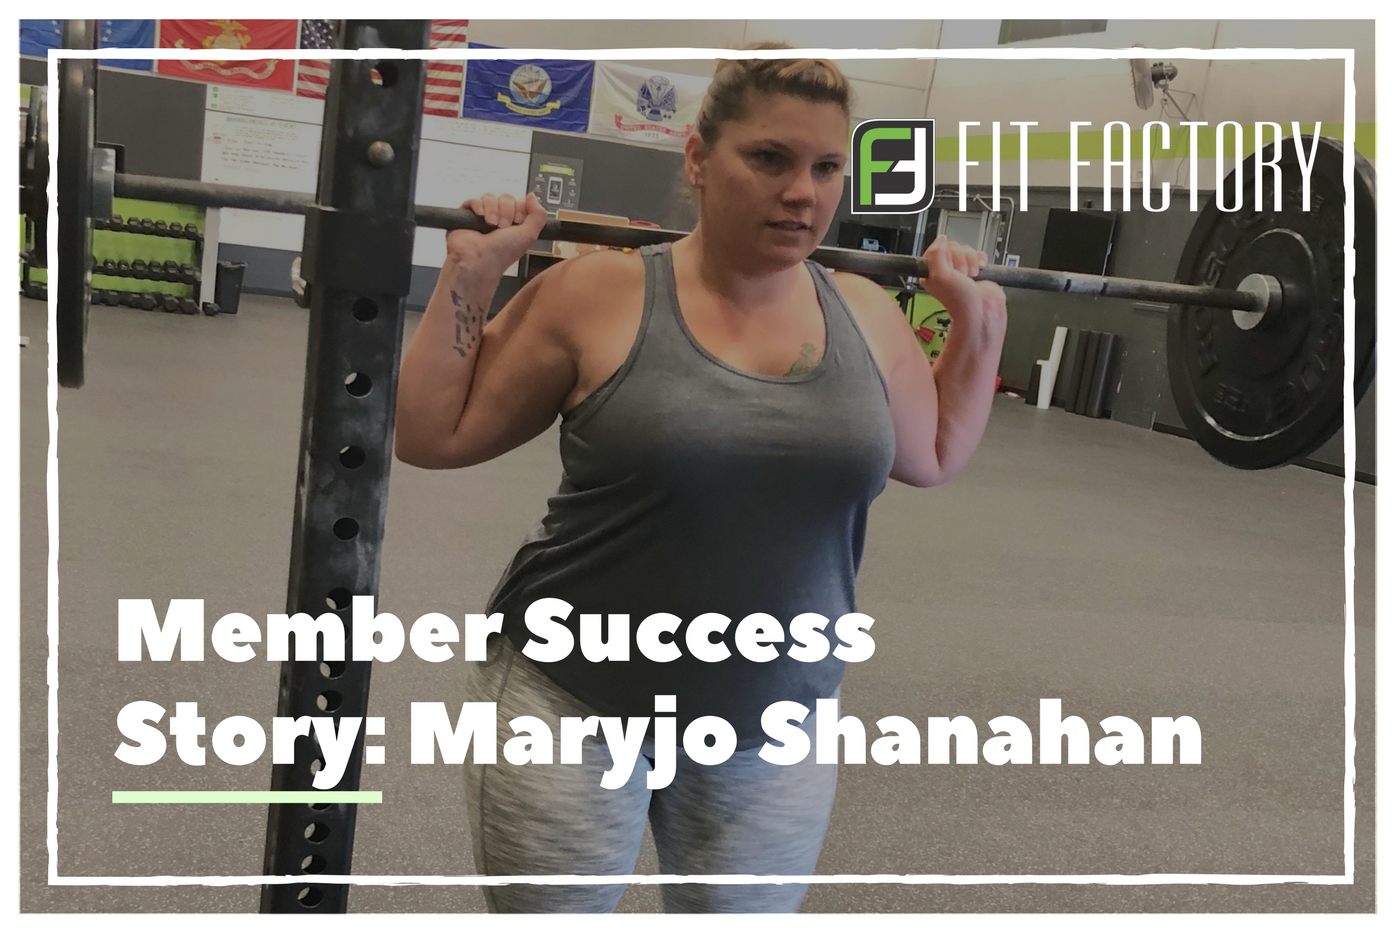 Member Success Story: Maryjo Shanahan